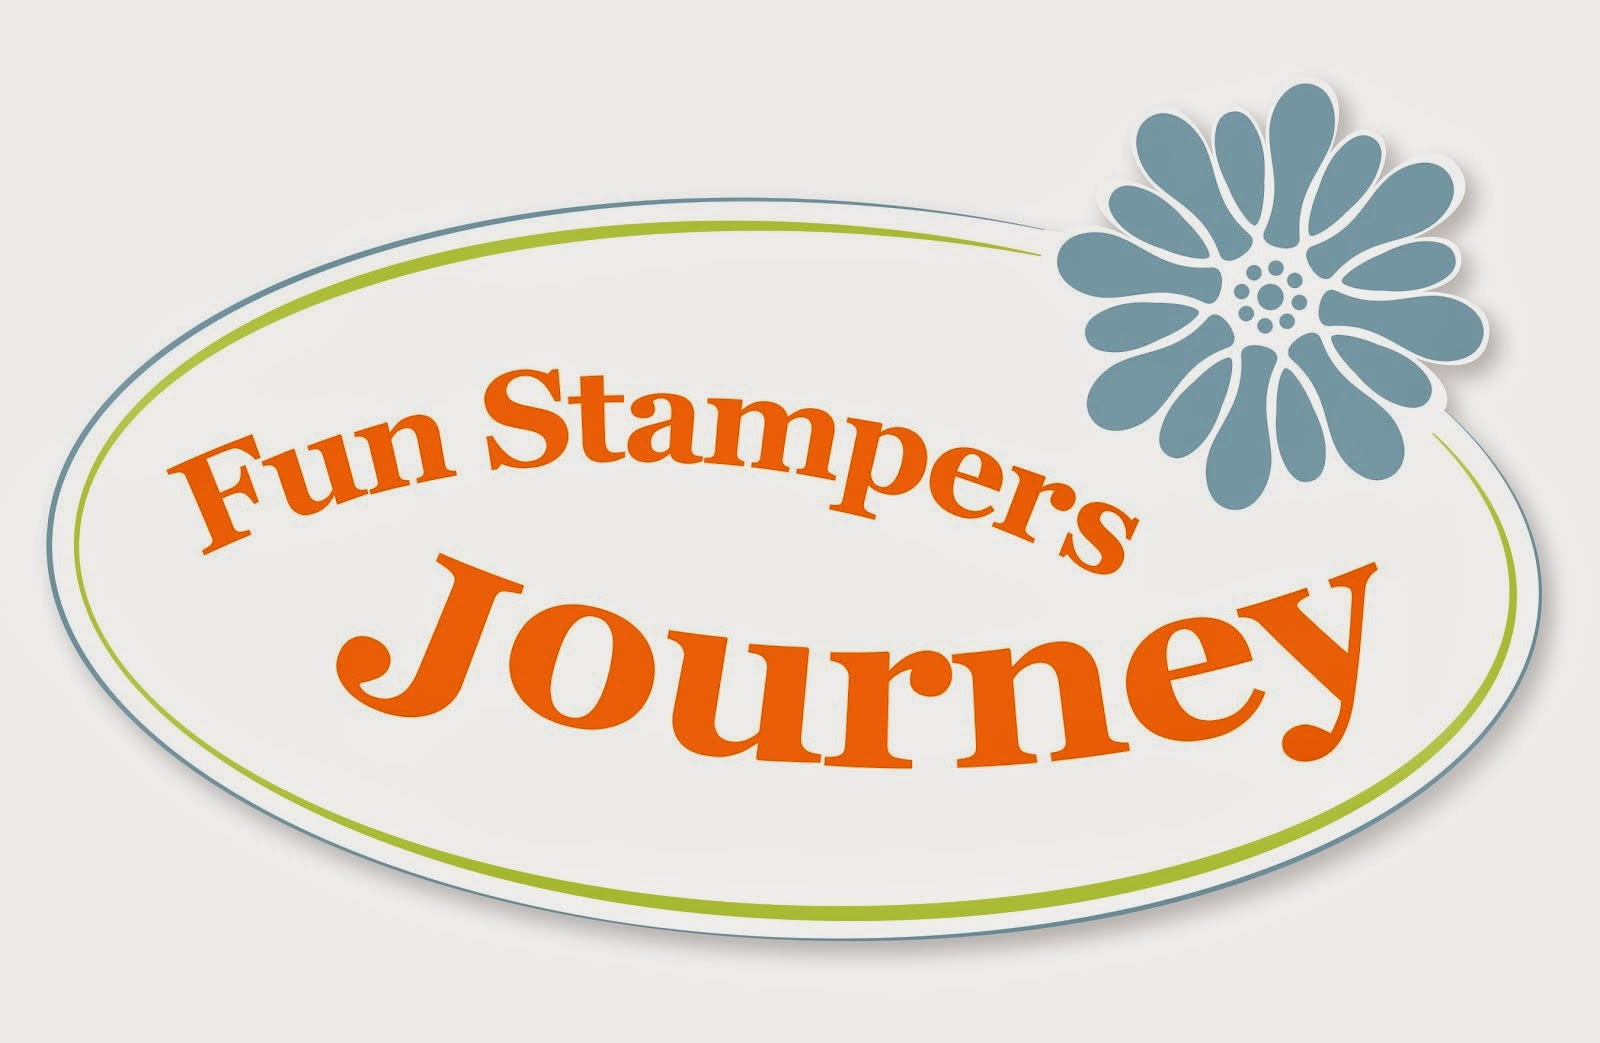 Fun Stamper's Journey